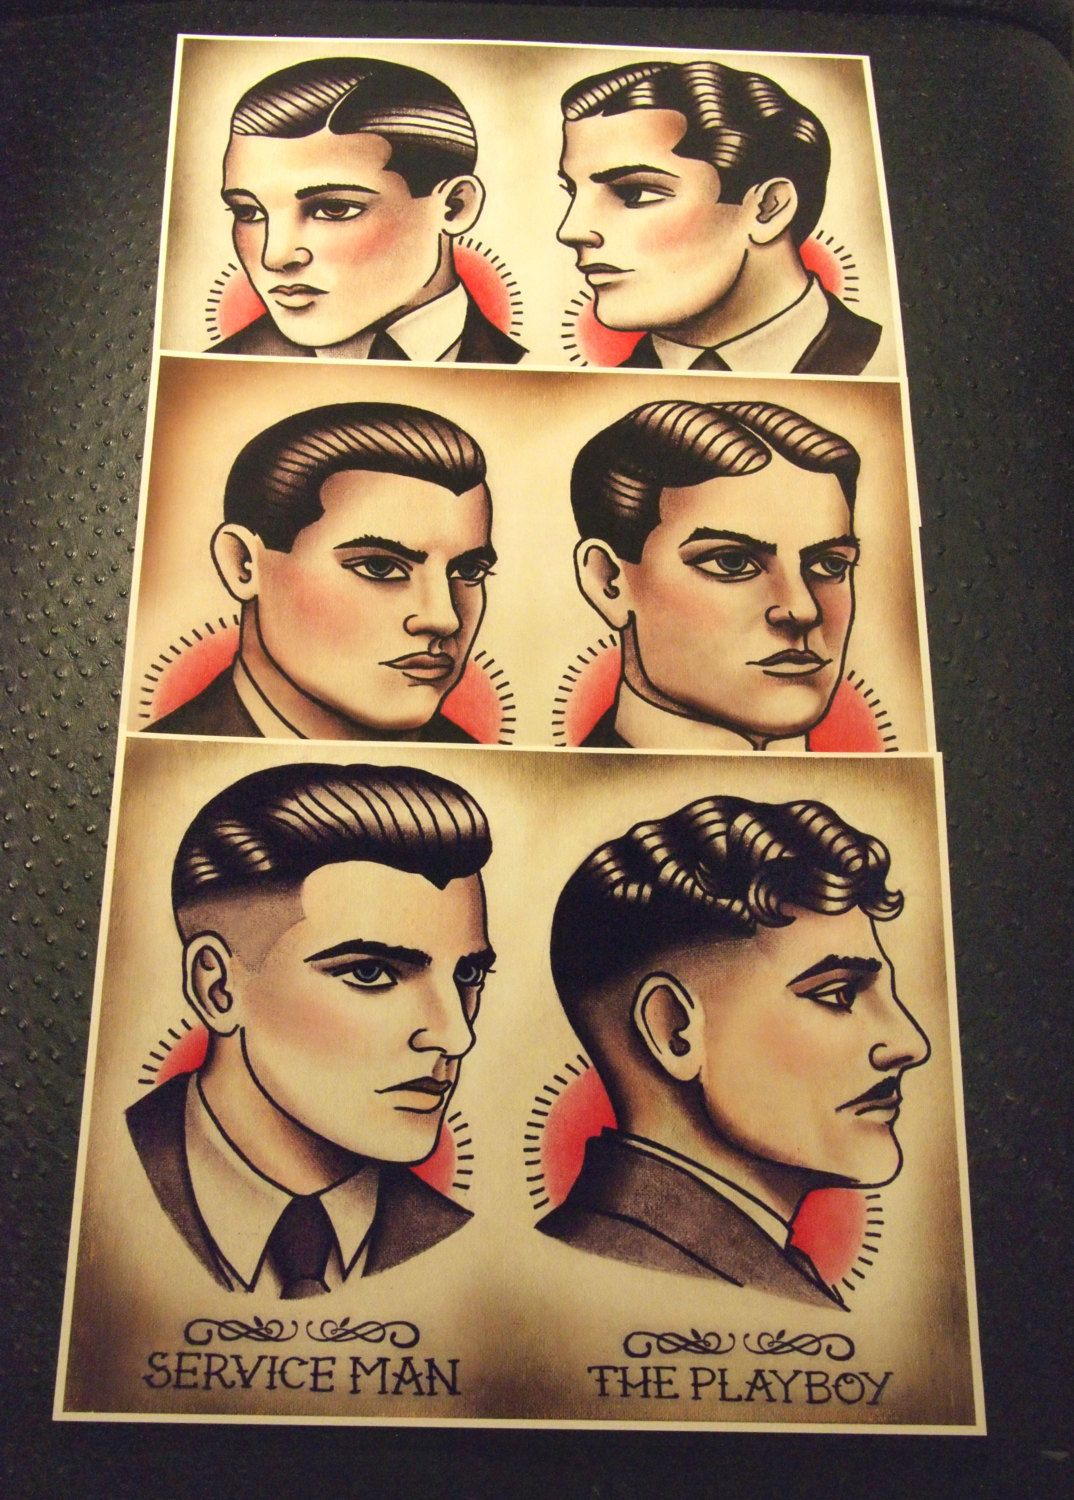 1920s men's hair styles